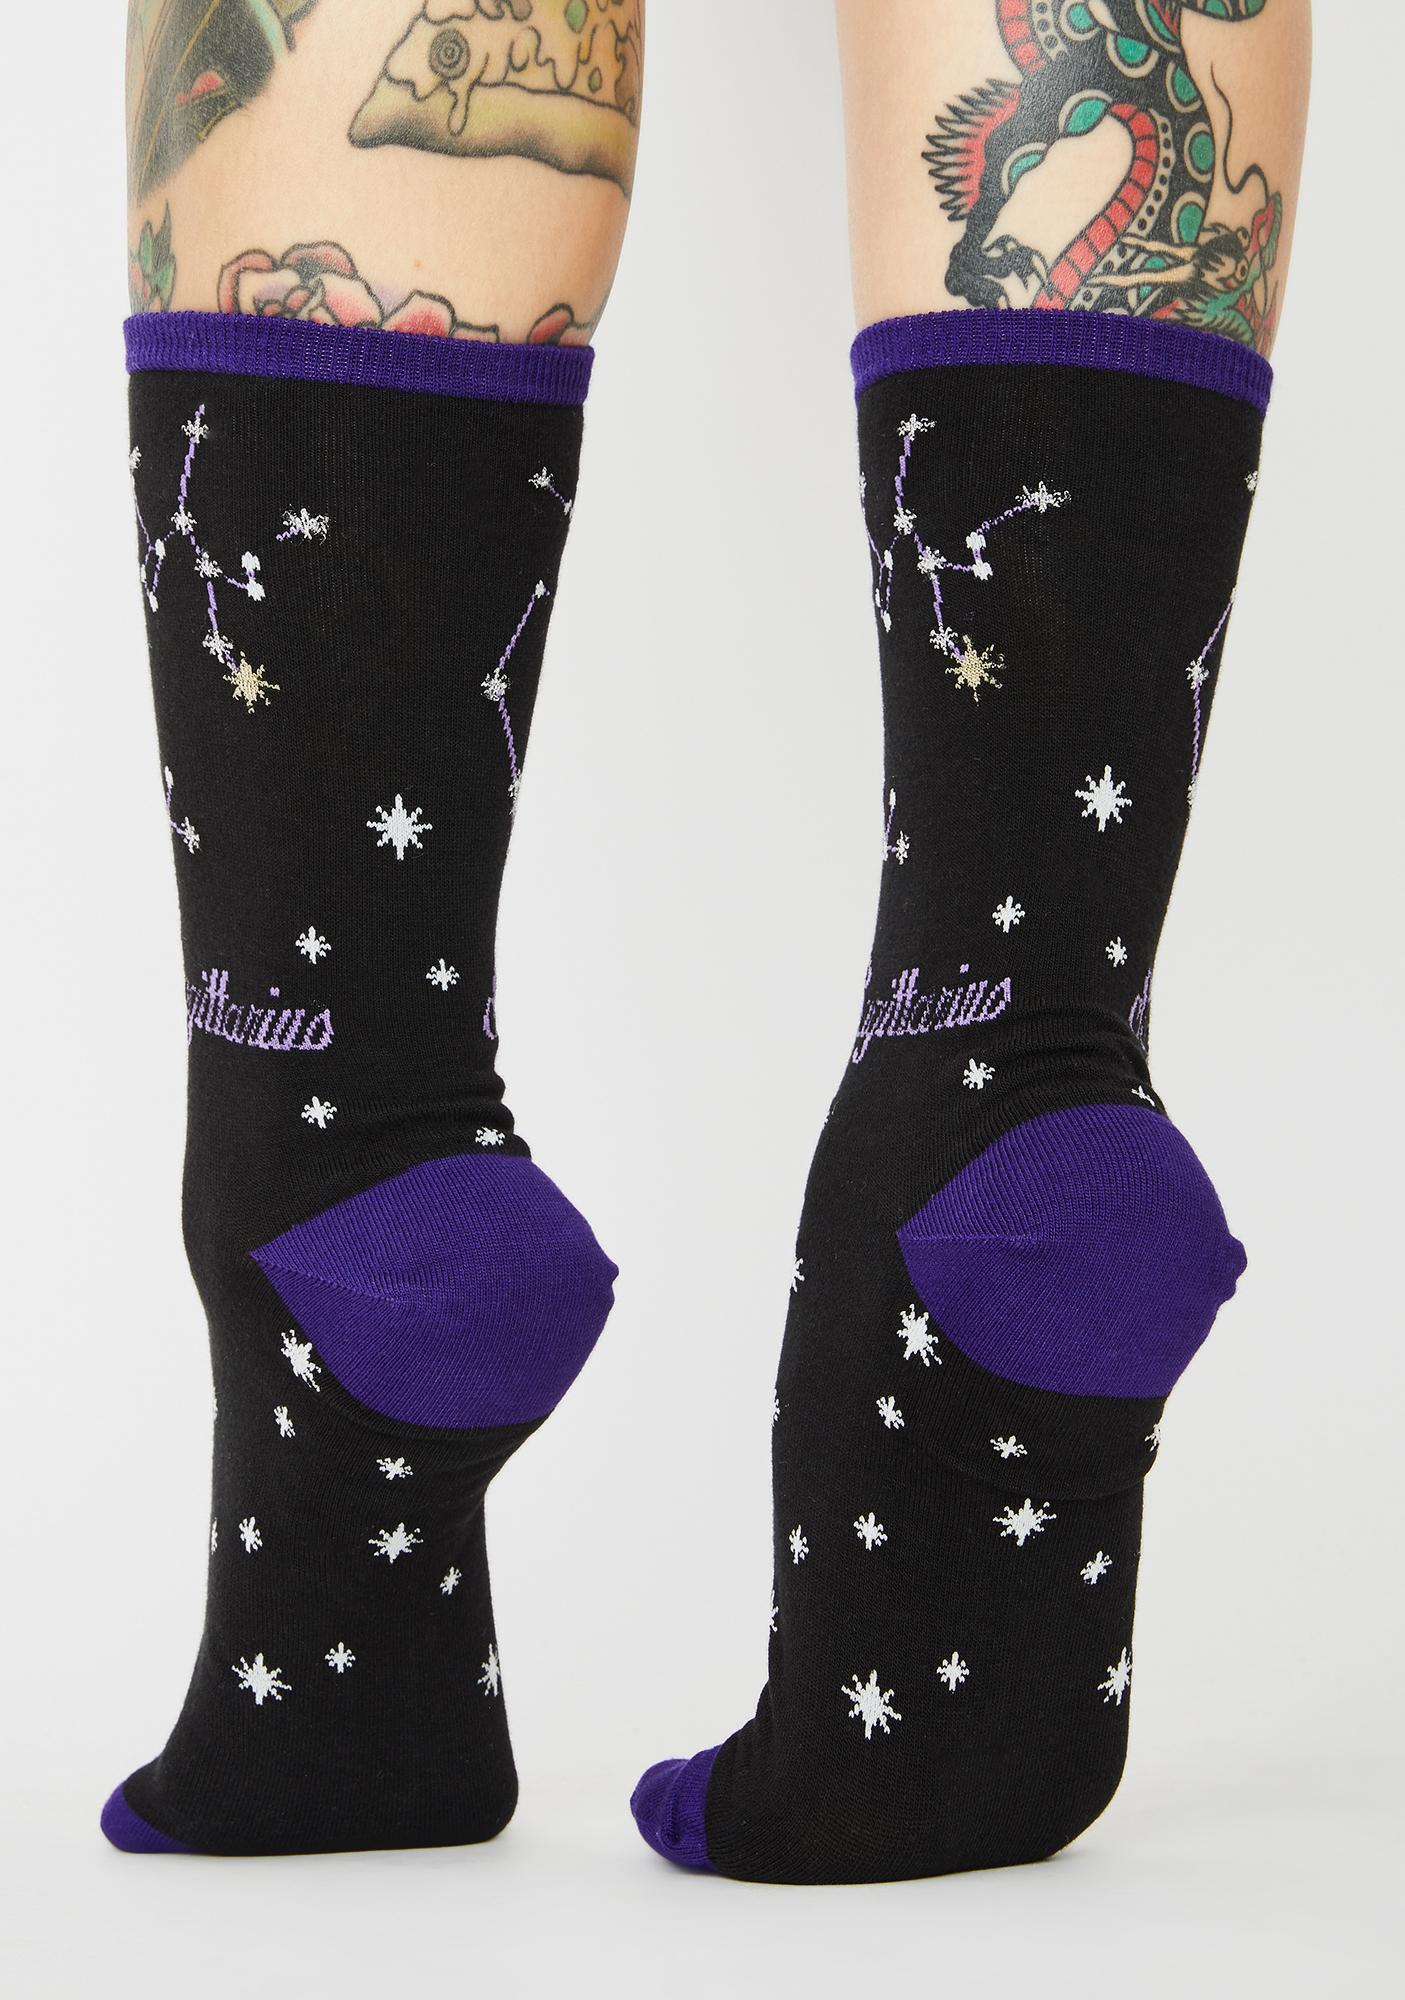 Socksmith Design Sagittarius Crew Socks